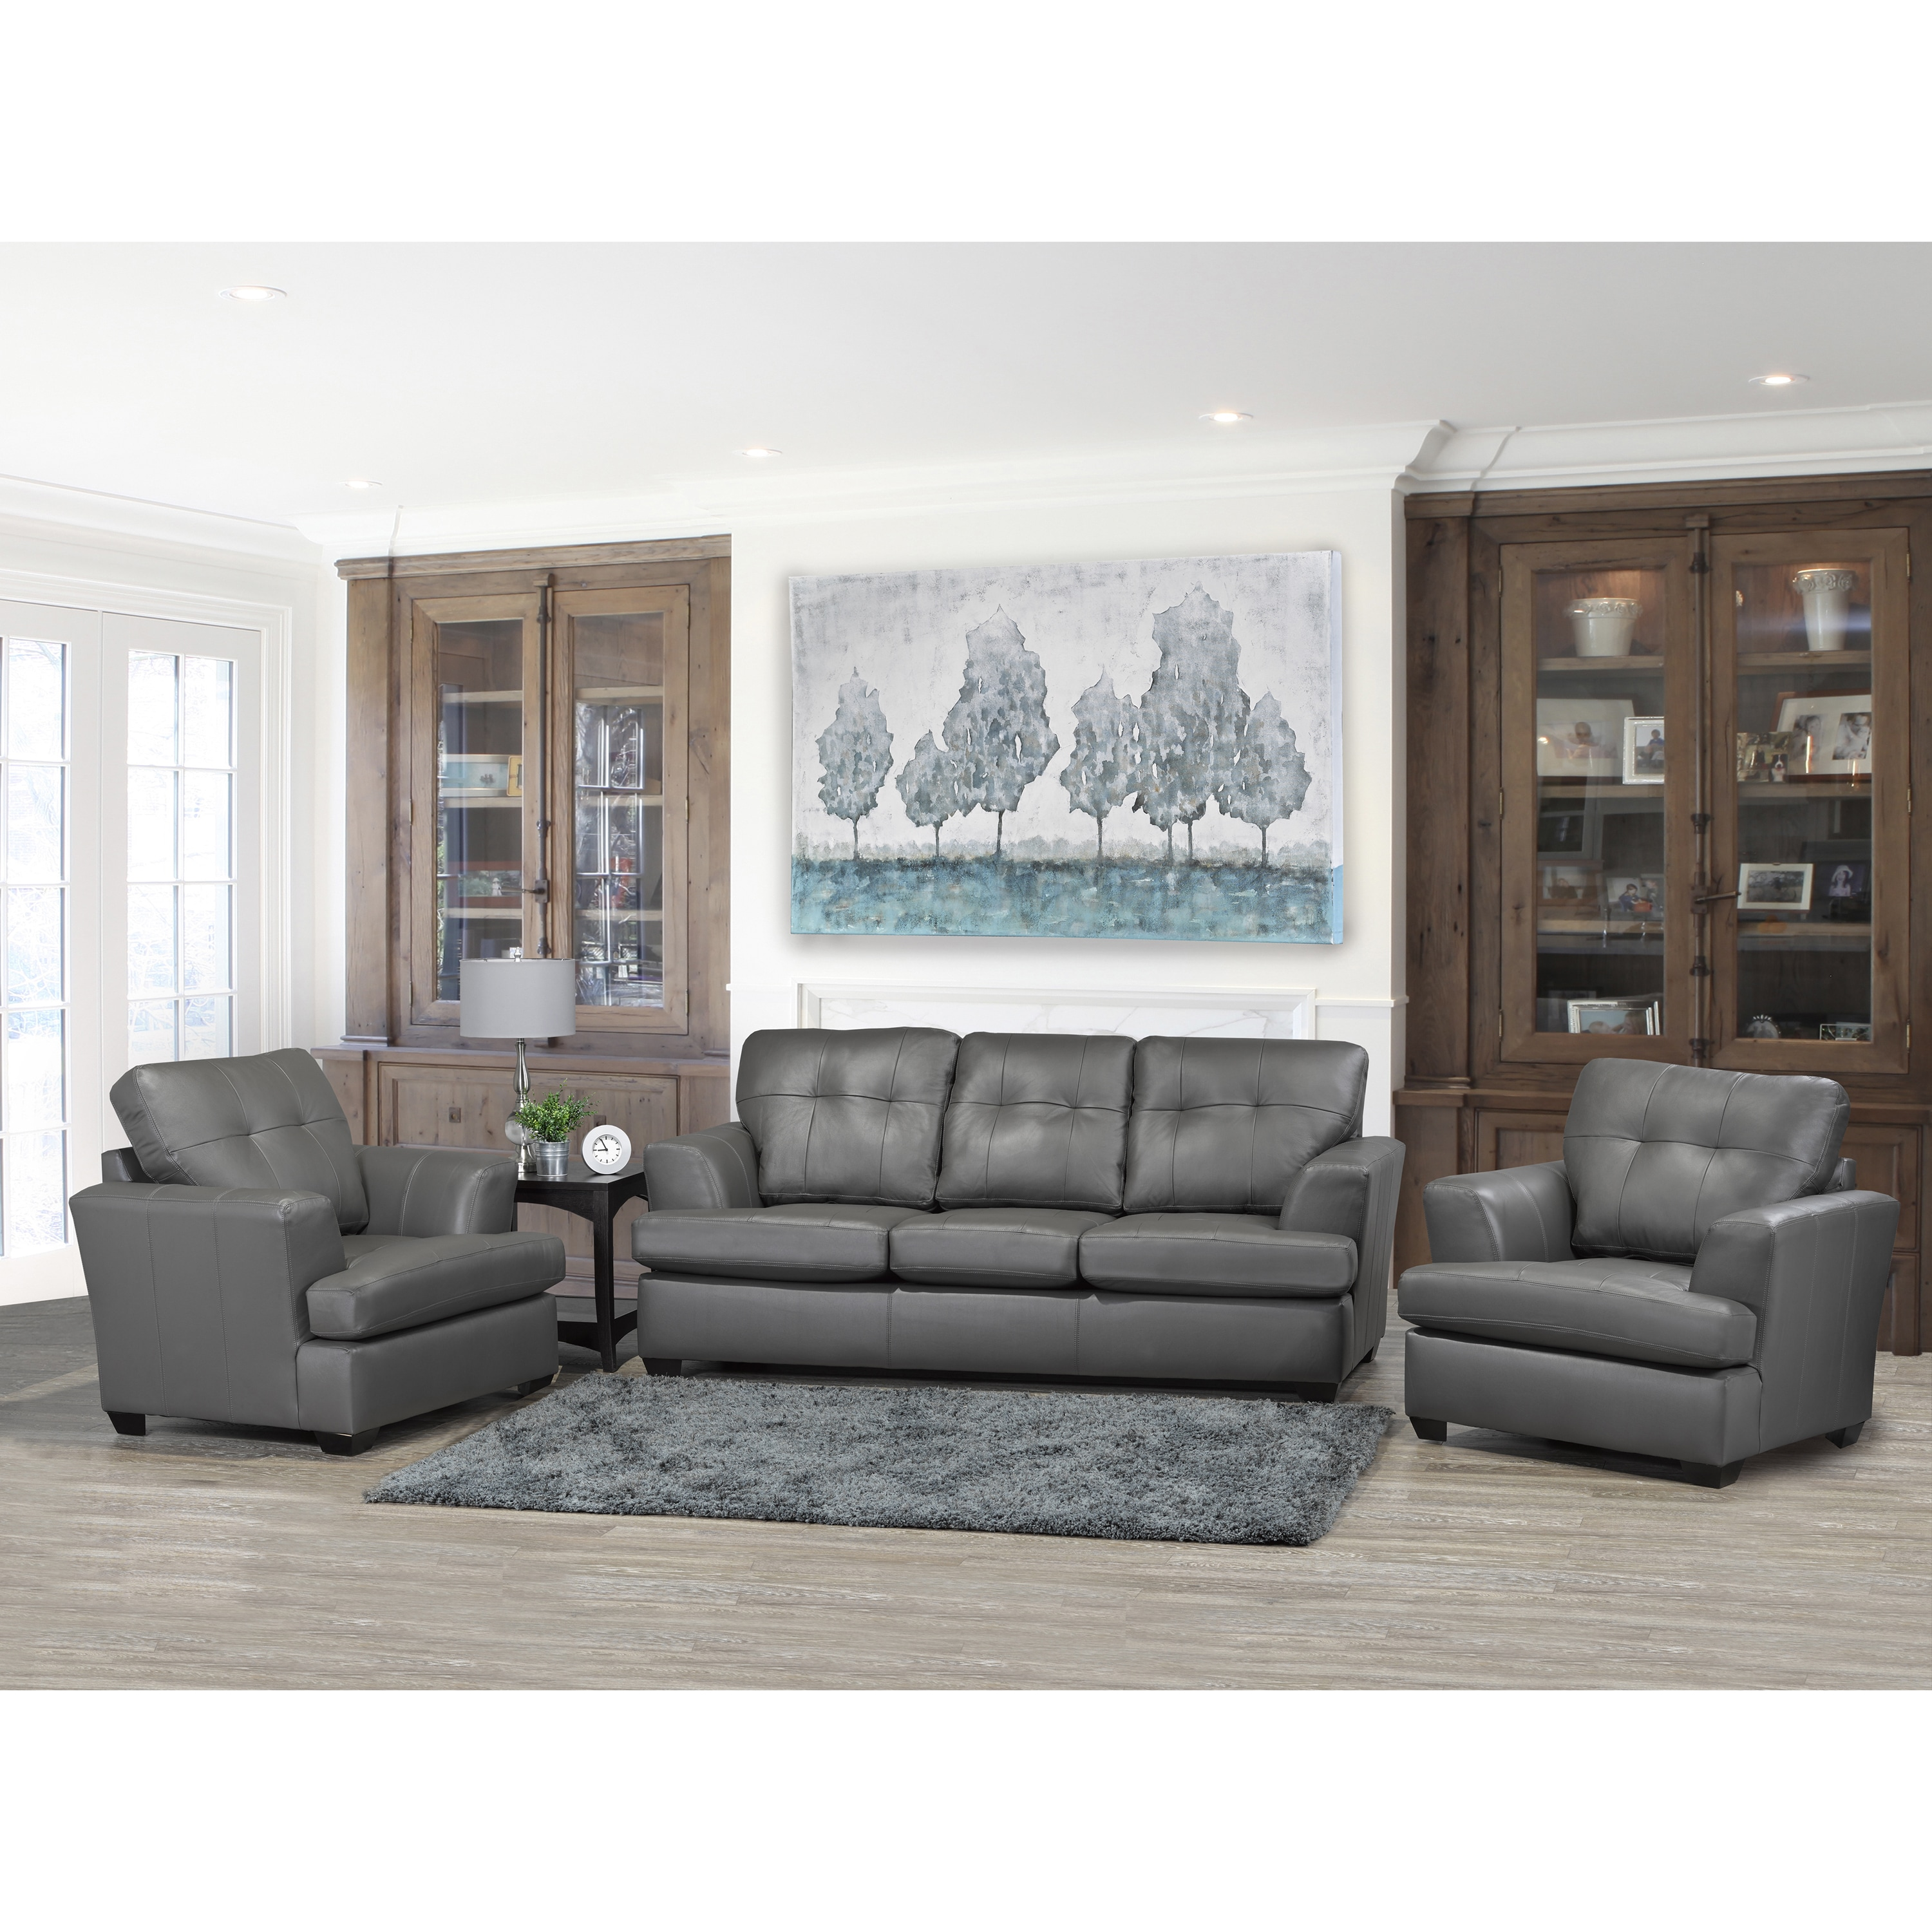 Premium Grey Top Grain Leather Sofa